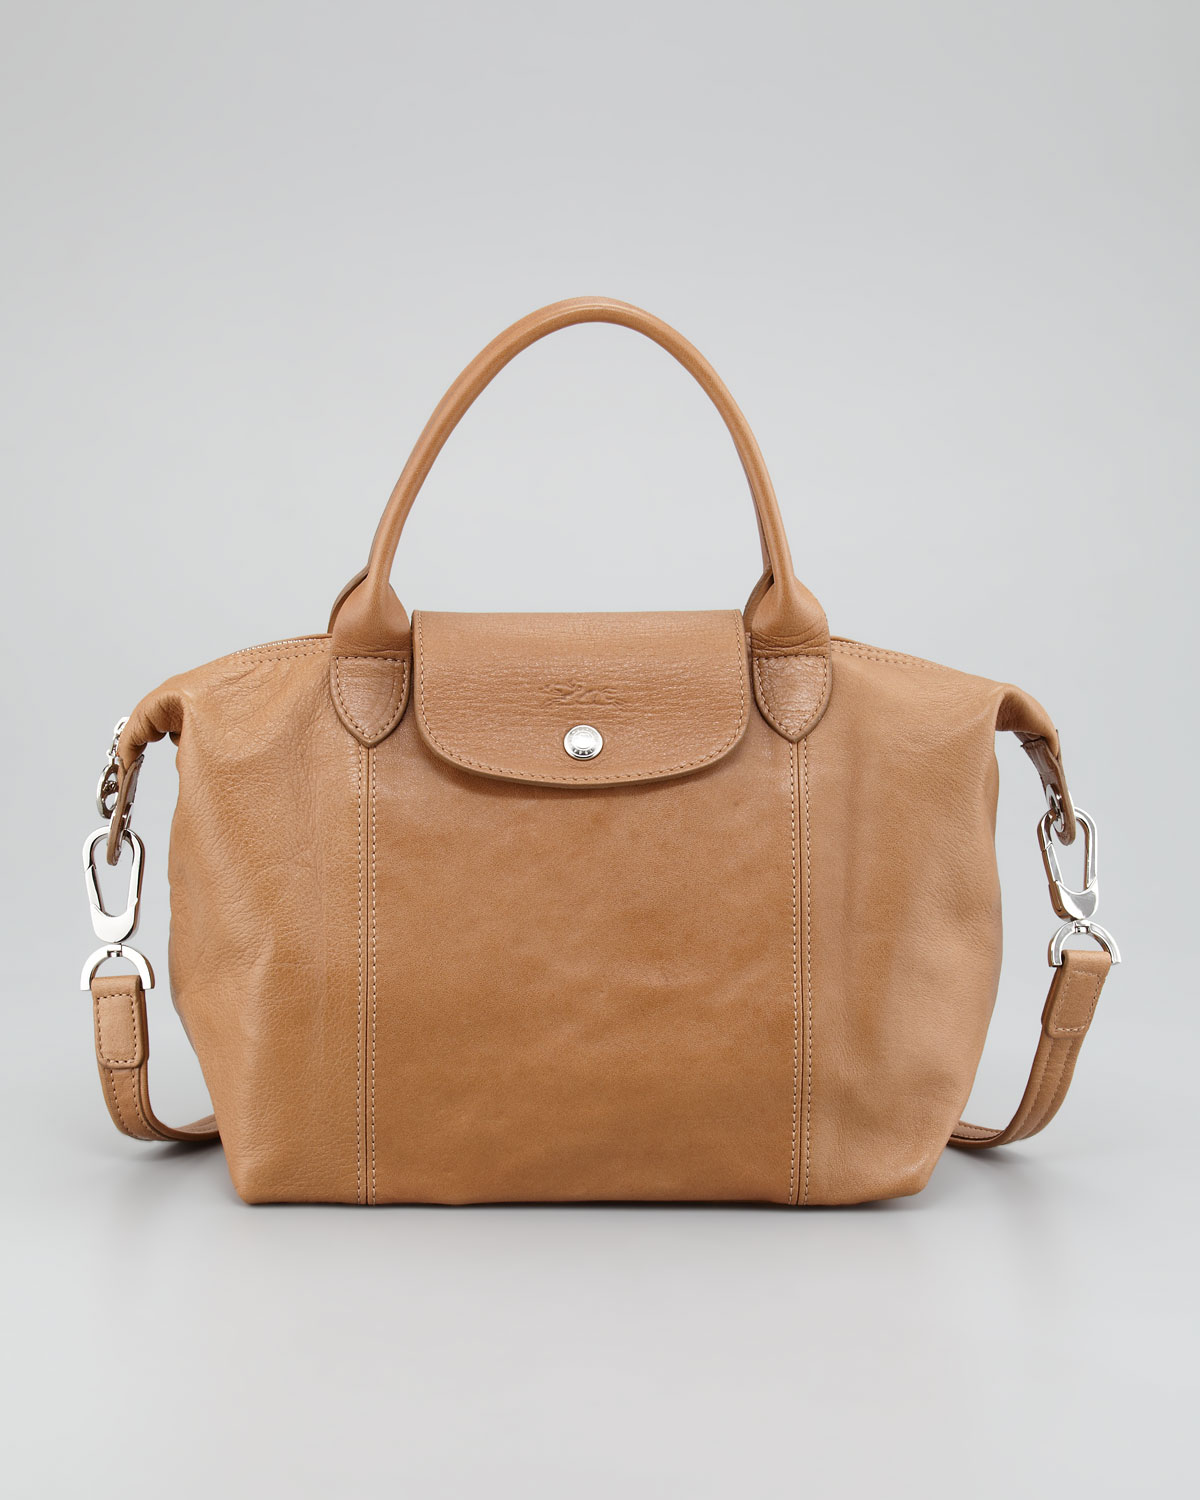 97377d77cc Longchamp Small Leather Tote Bag in Brown - Lyst